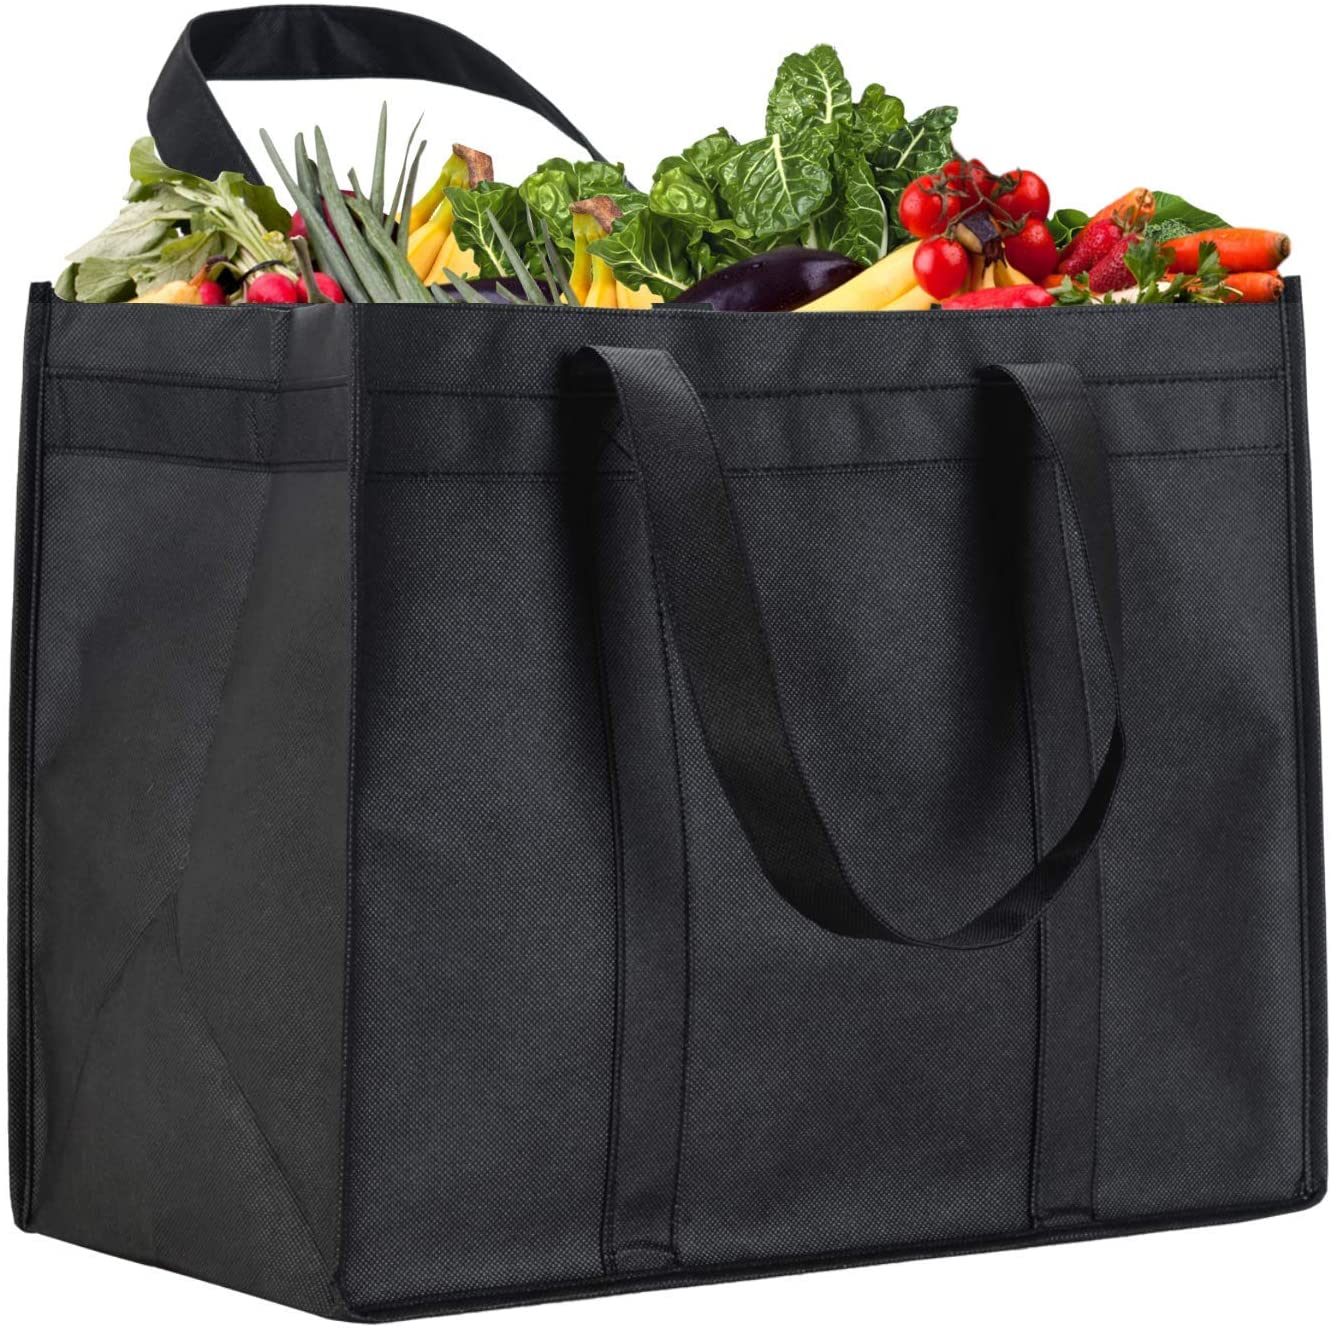 NZ Home XL Reusable Grocery Bags, Heavy Duty Shopping Tote, Stands Upright, Foldable, Washable (Black 5 Pack)